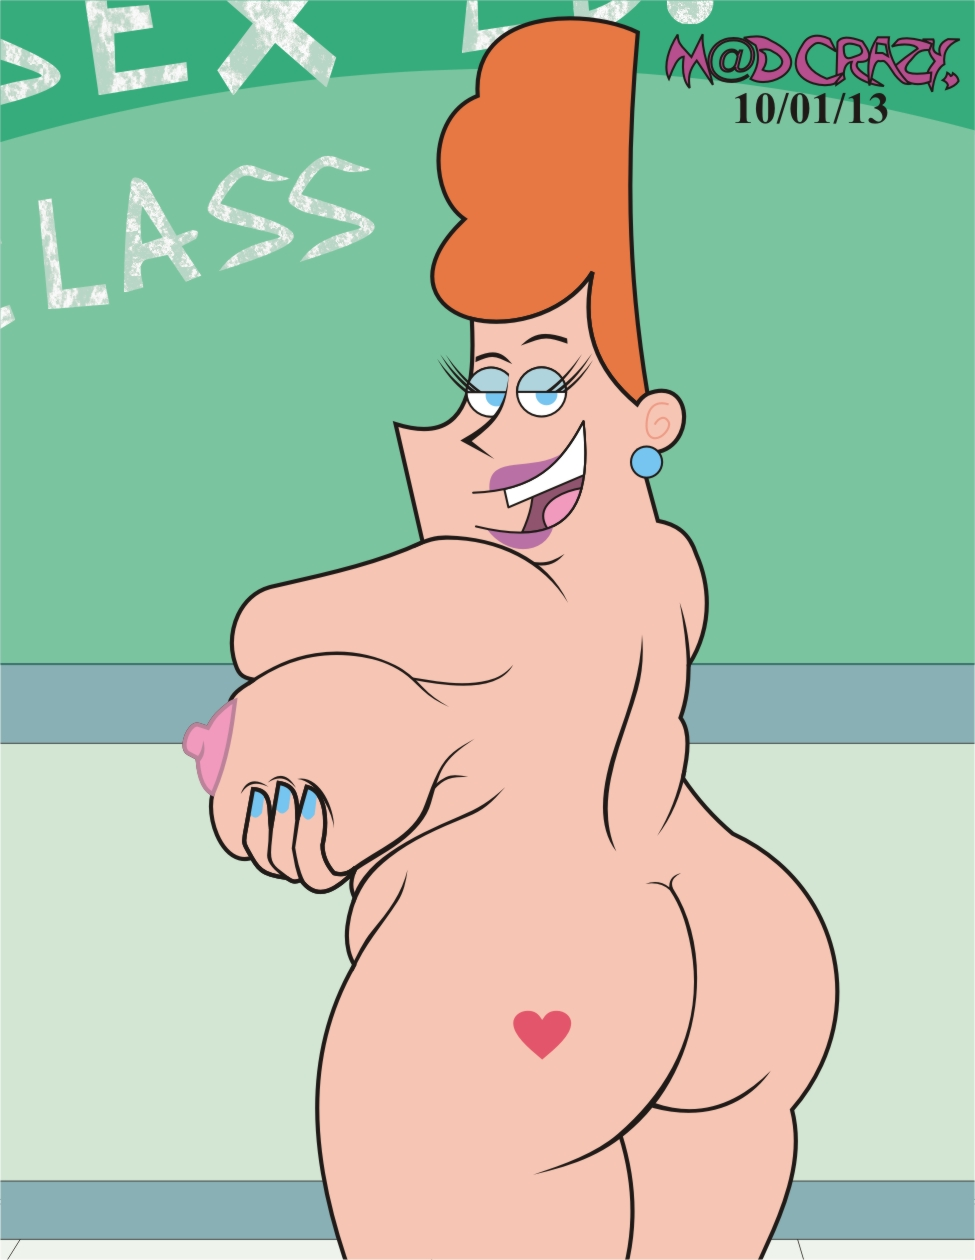 That necessary, the fairly oddparents porno excellent words